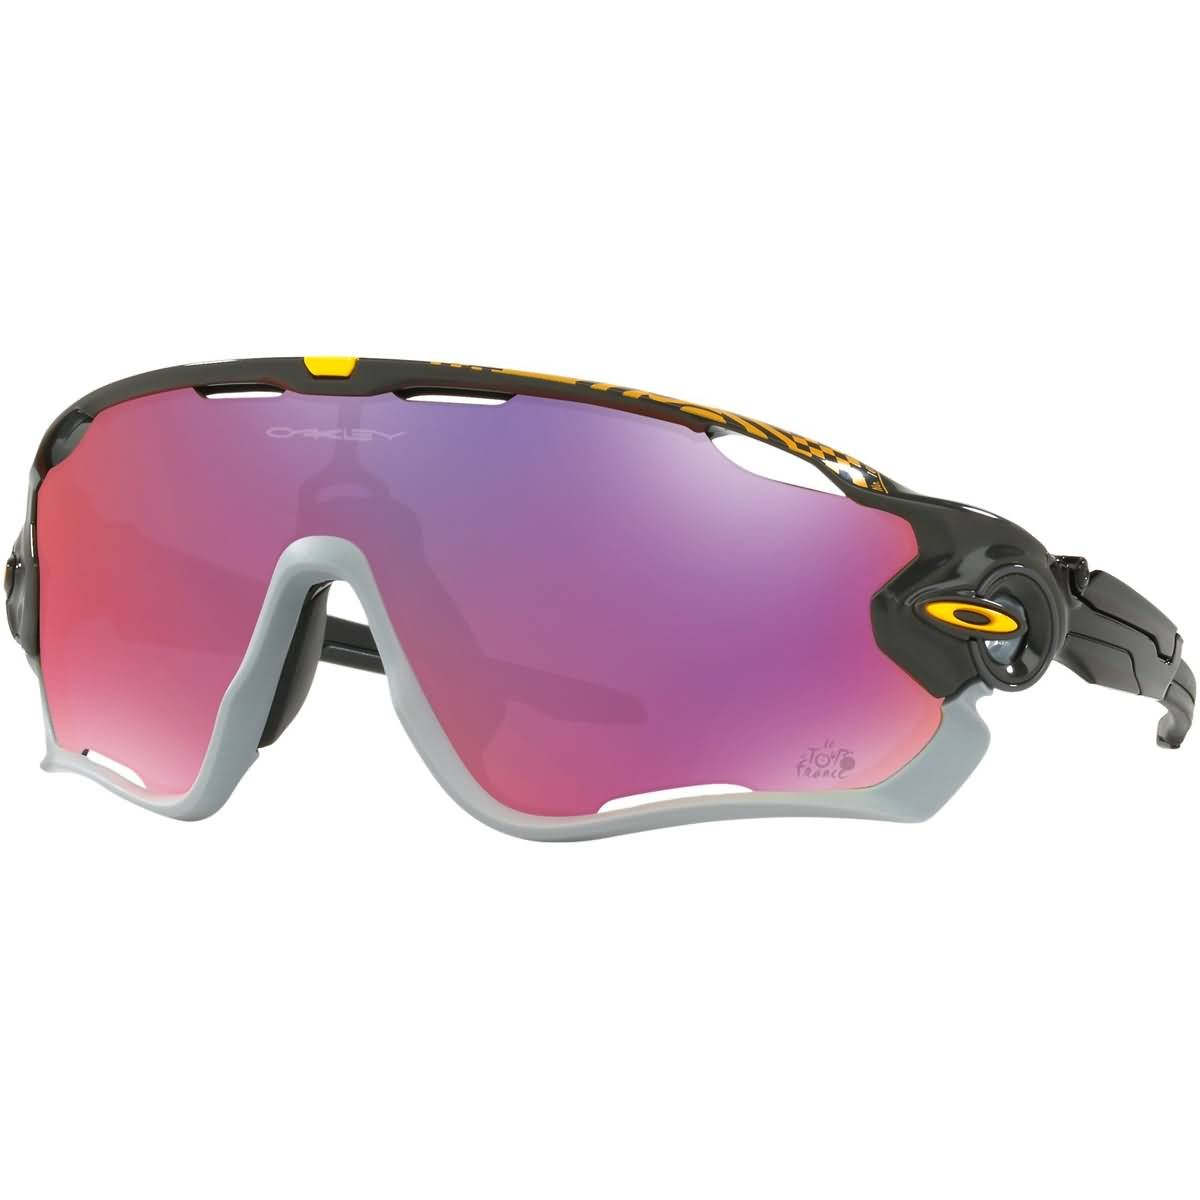 b9f9b643567f2 Amazon.com  Oakley Men s Jawbreaker Non-Polarized Iridium Rectangular  Sunglasses